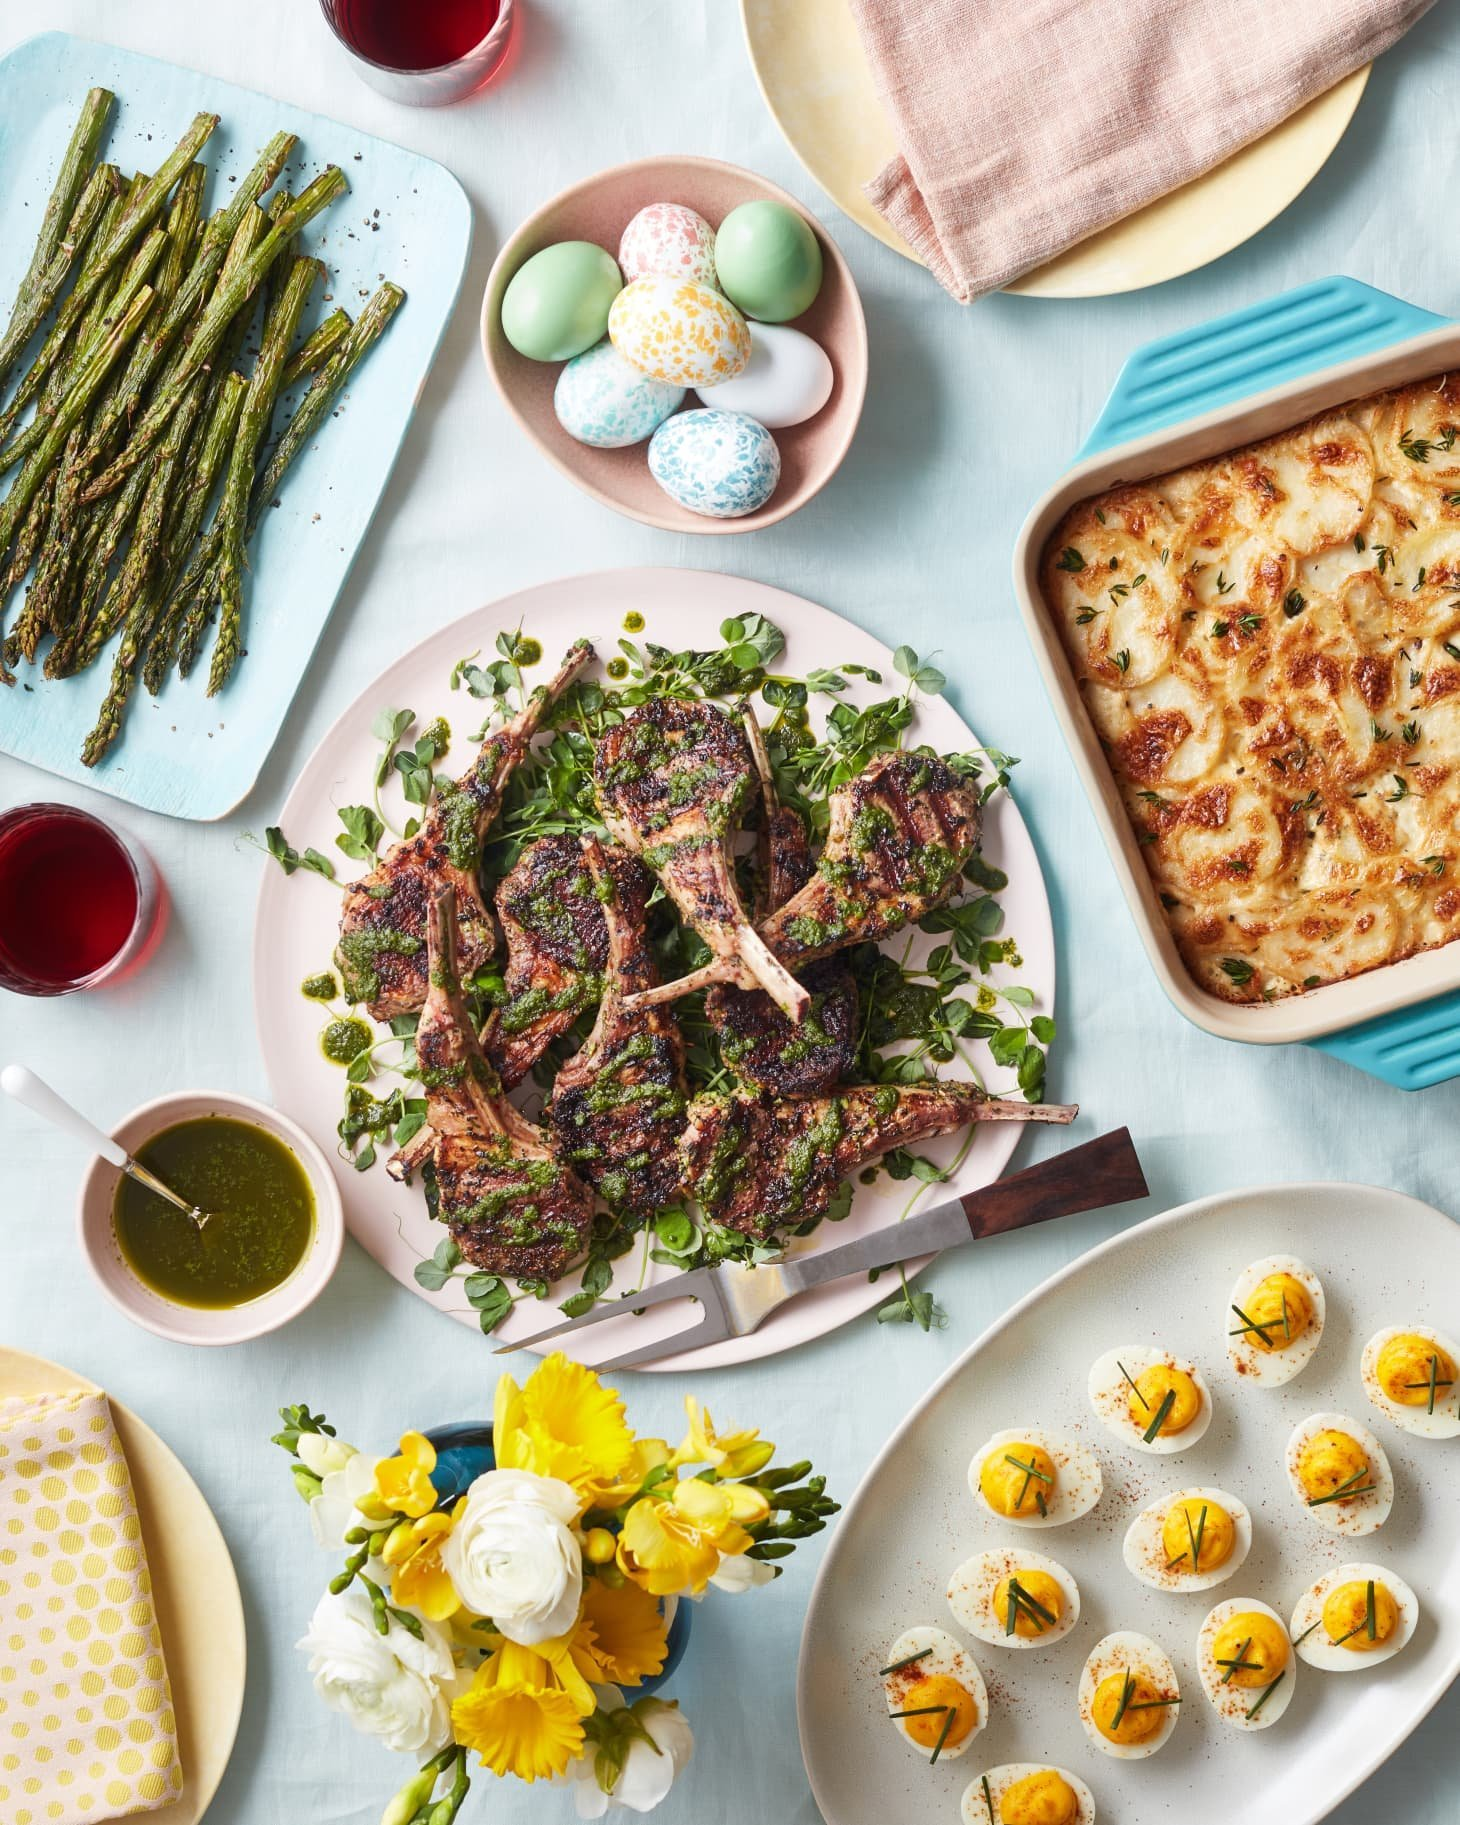 The Best Easter Menu Starts with Your Grill